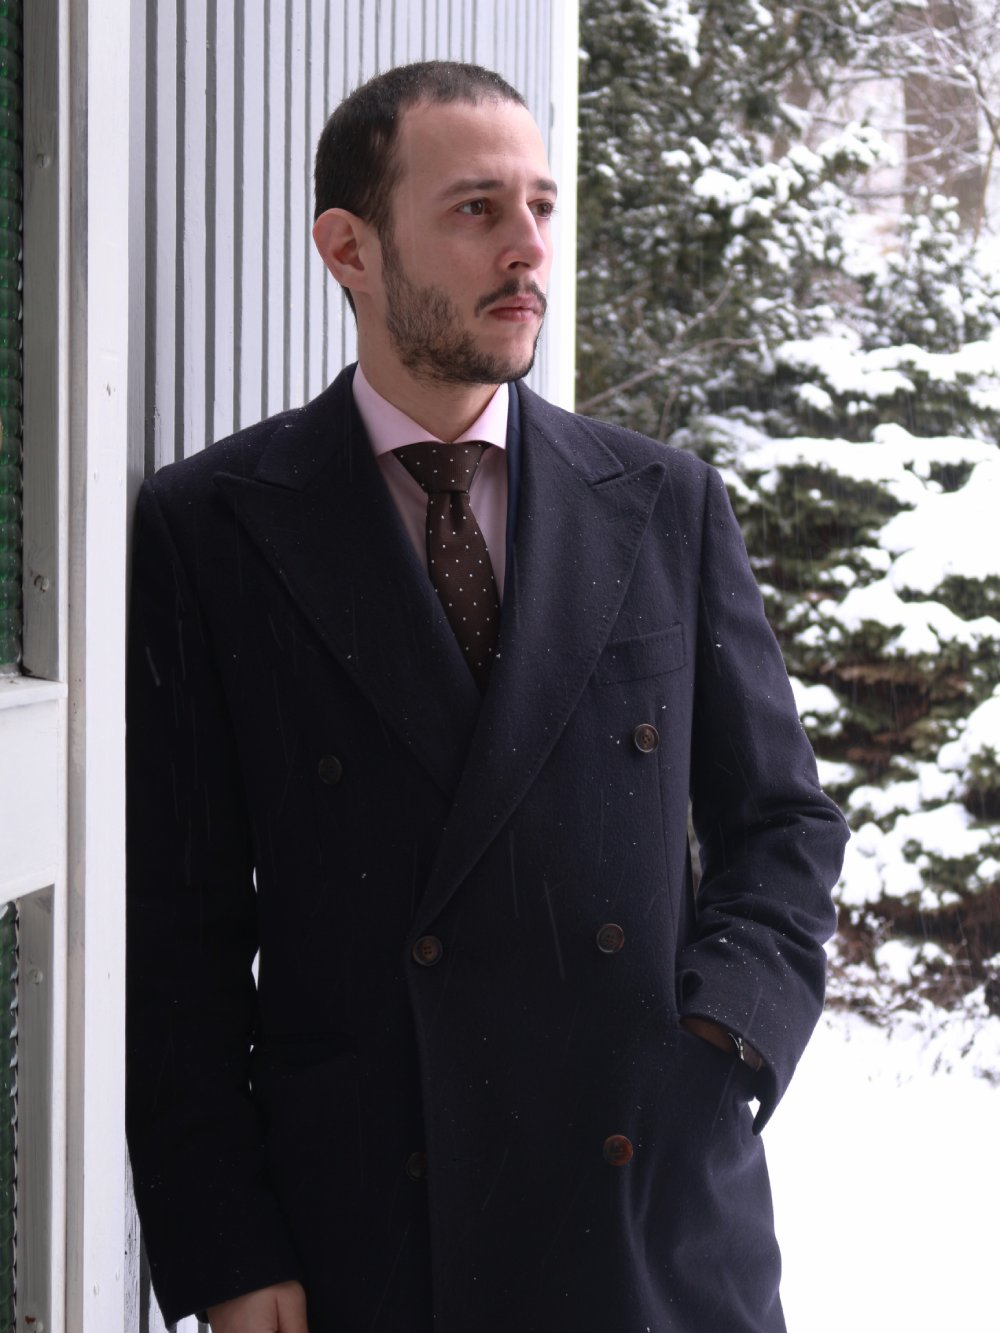 088f8e3209 Navy Double Breasted Suitsupply Cashmere Coat Review   Misiu Academy